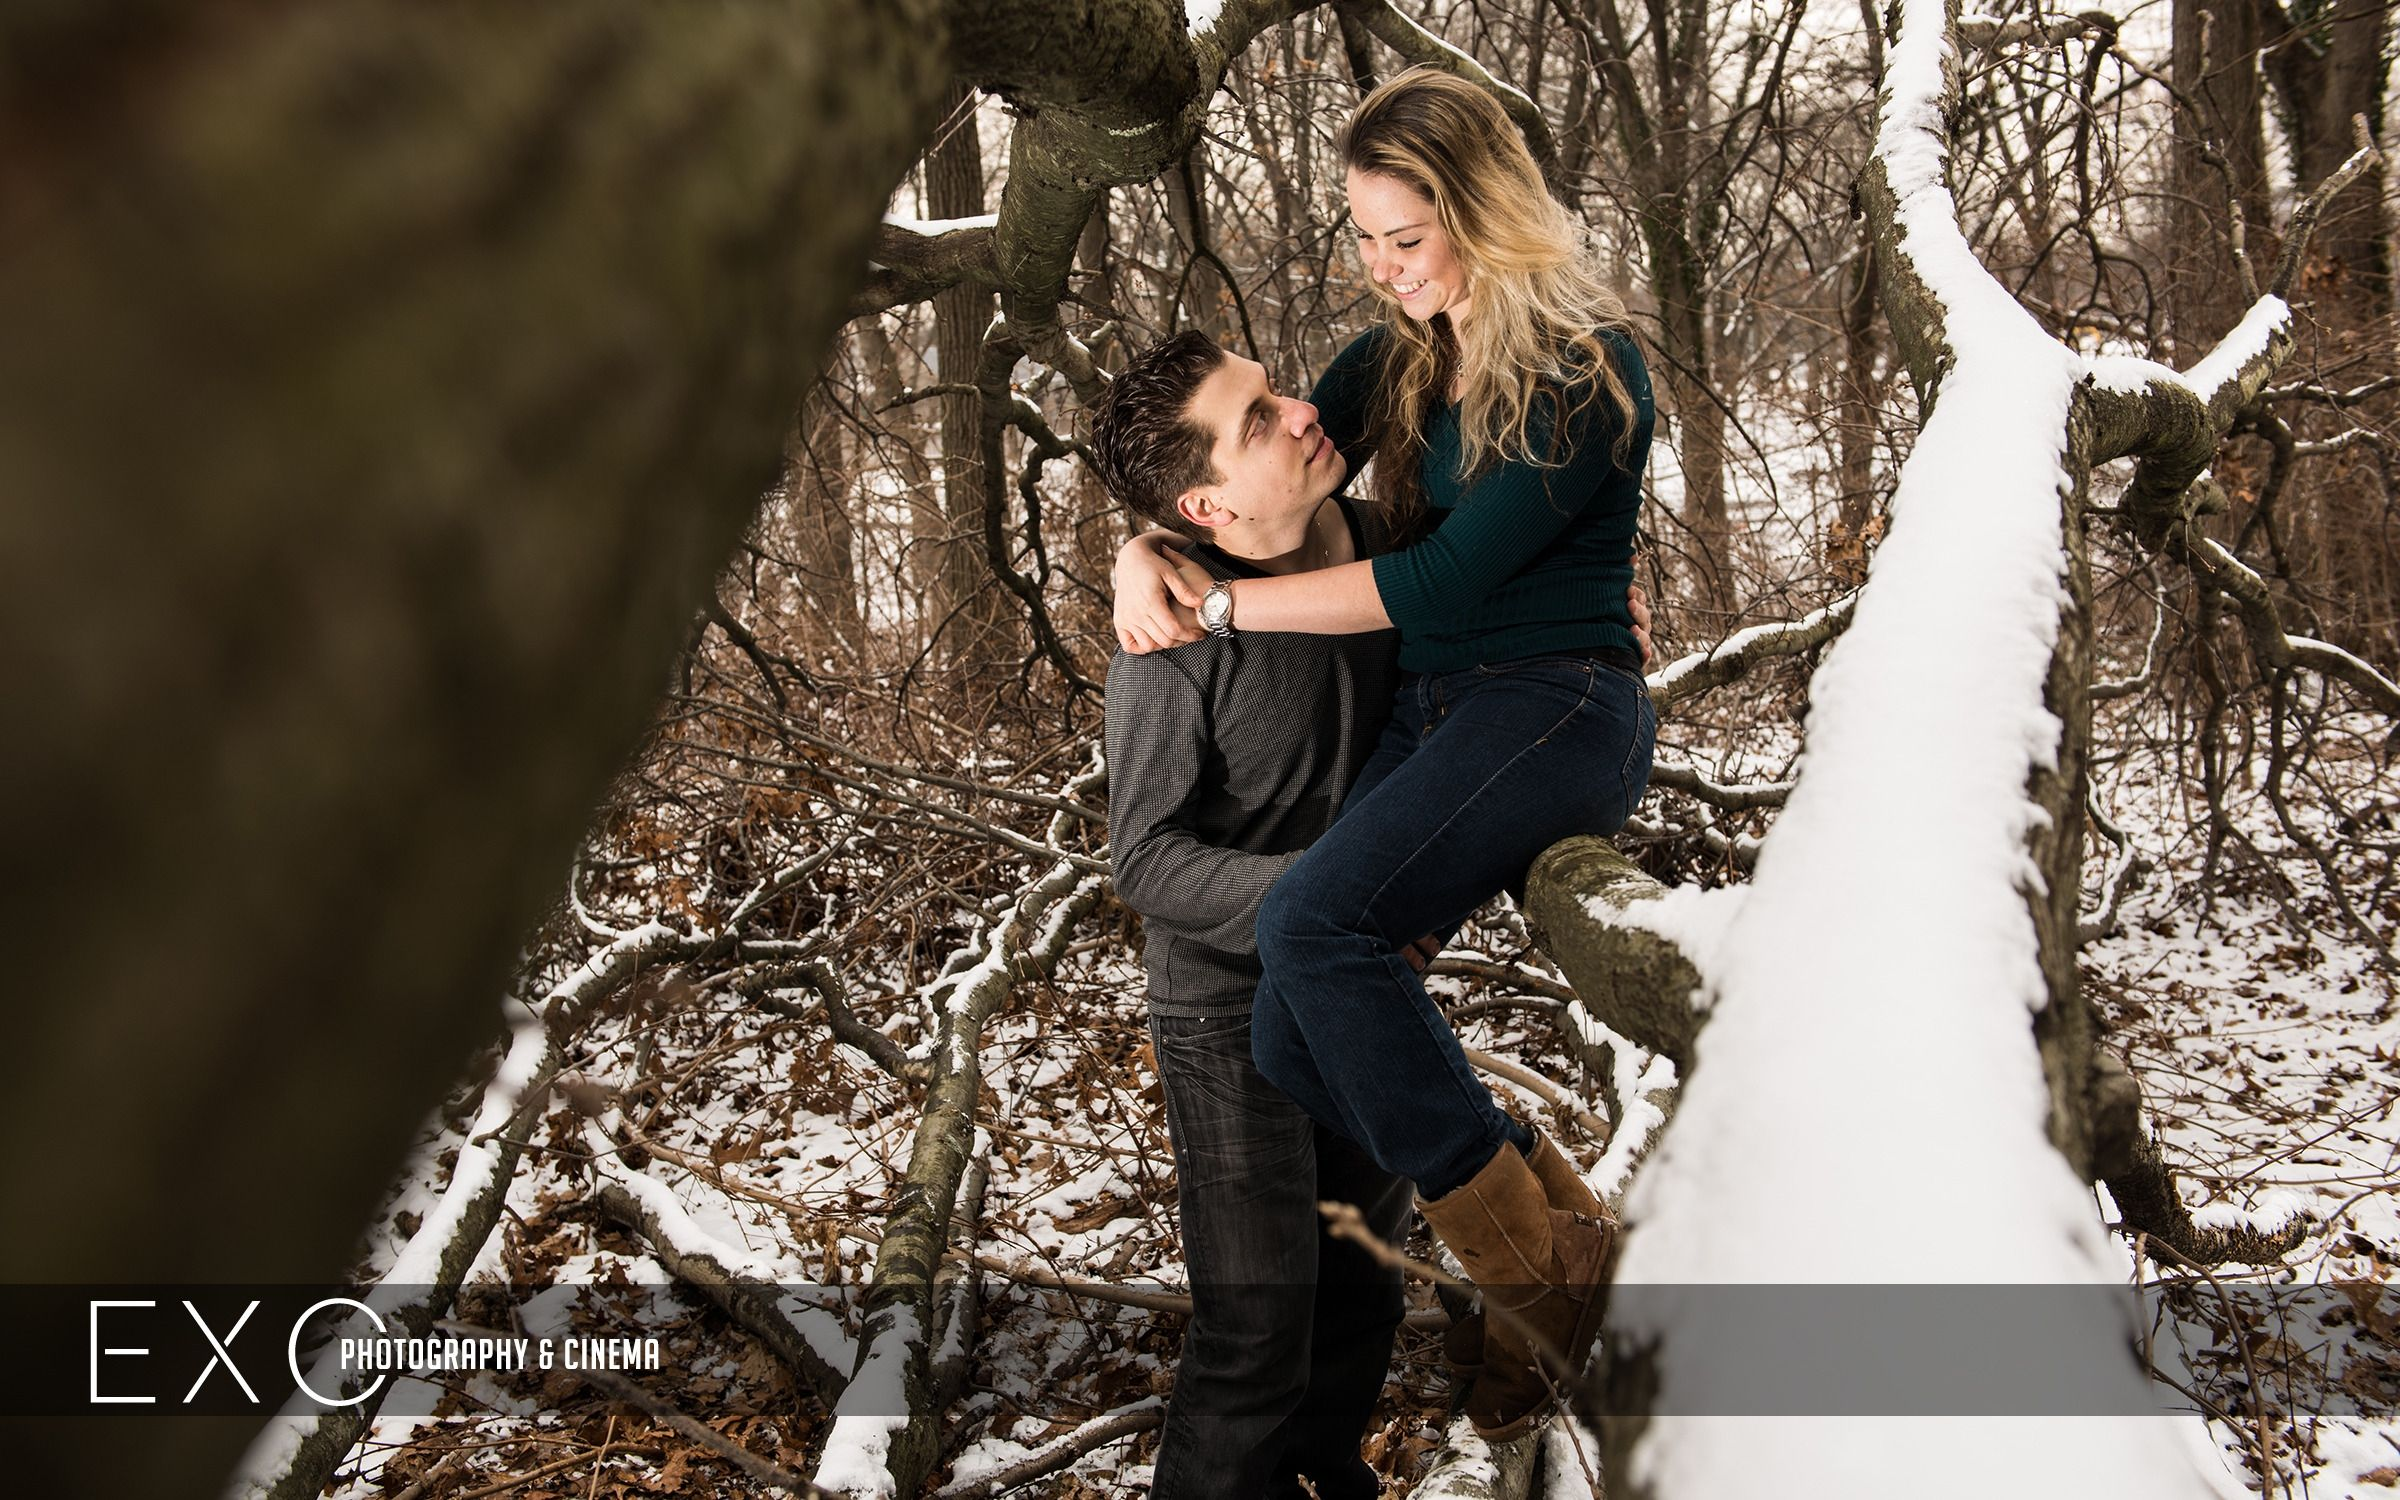 Winter, engagement photos, engagement, engagement photoshoot, winter engagement photoshoot, fiance, snow theme engagement session